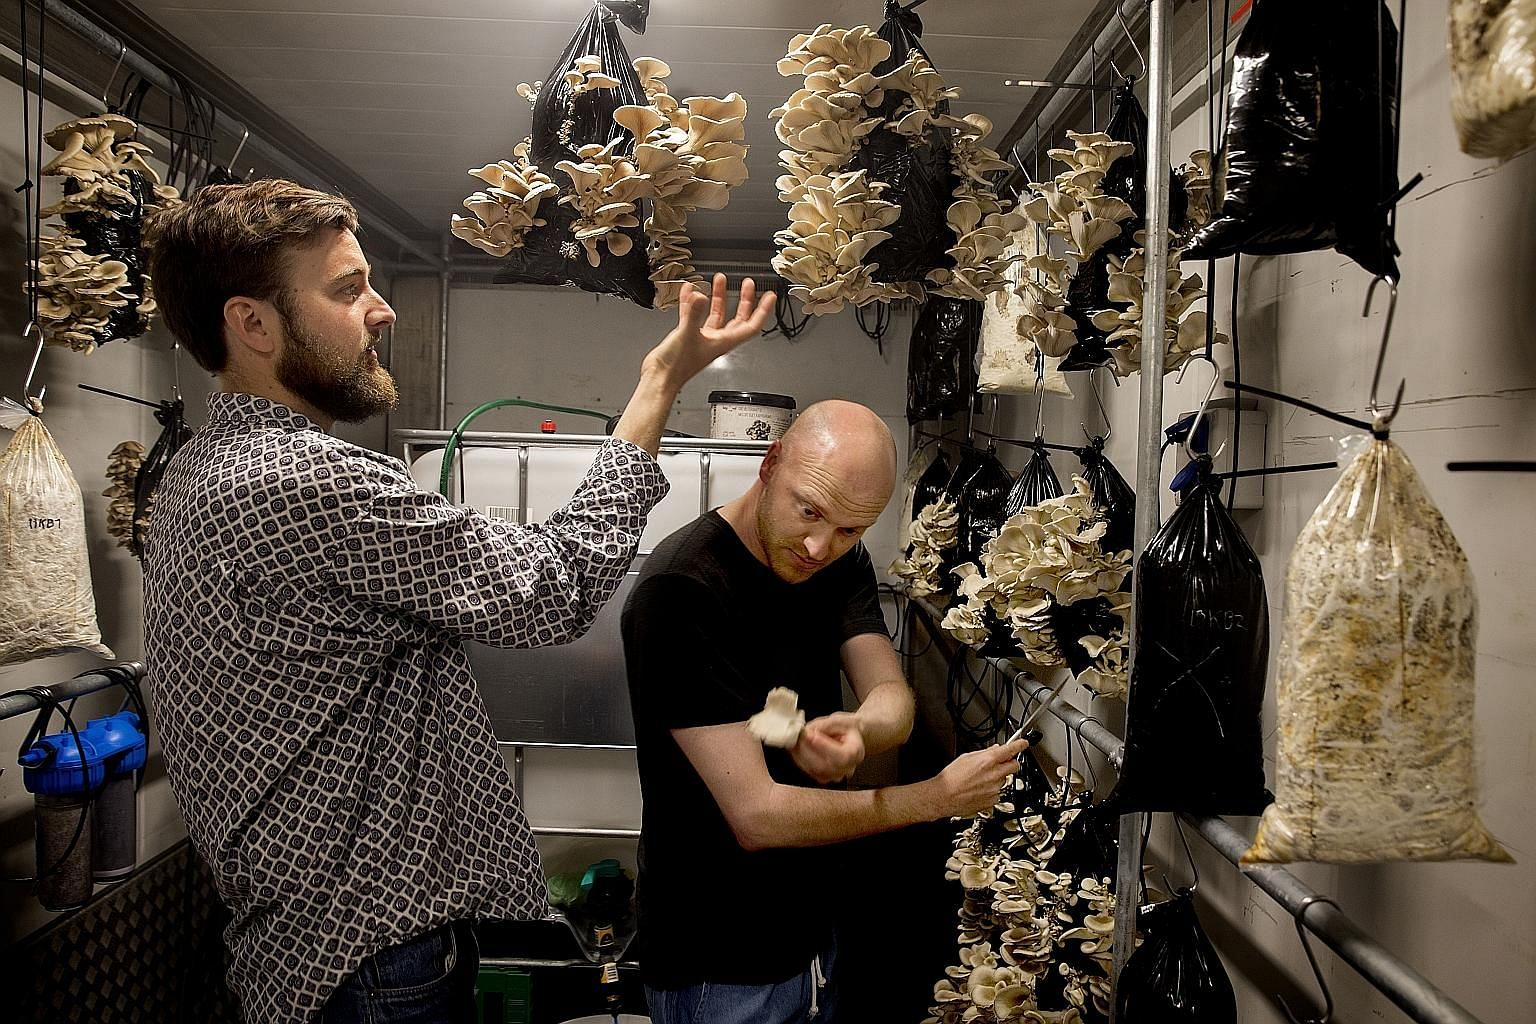 Above: The white, protein-rich mycelium. Right: Mr Tobias Lau (far right) and project manager Ebbe Korsgaard harvesting mushrooms grown in coffee grounds.